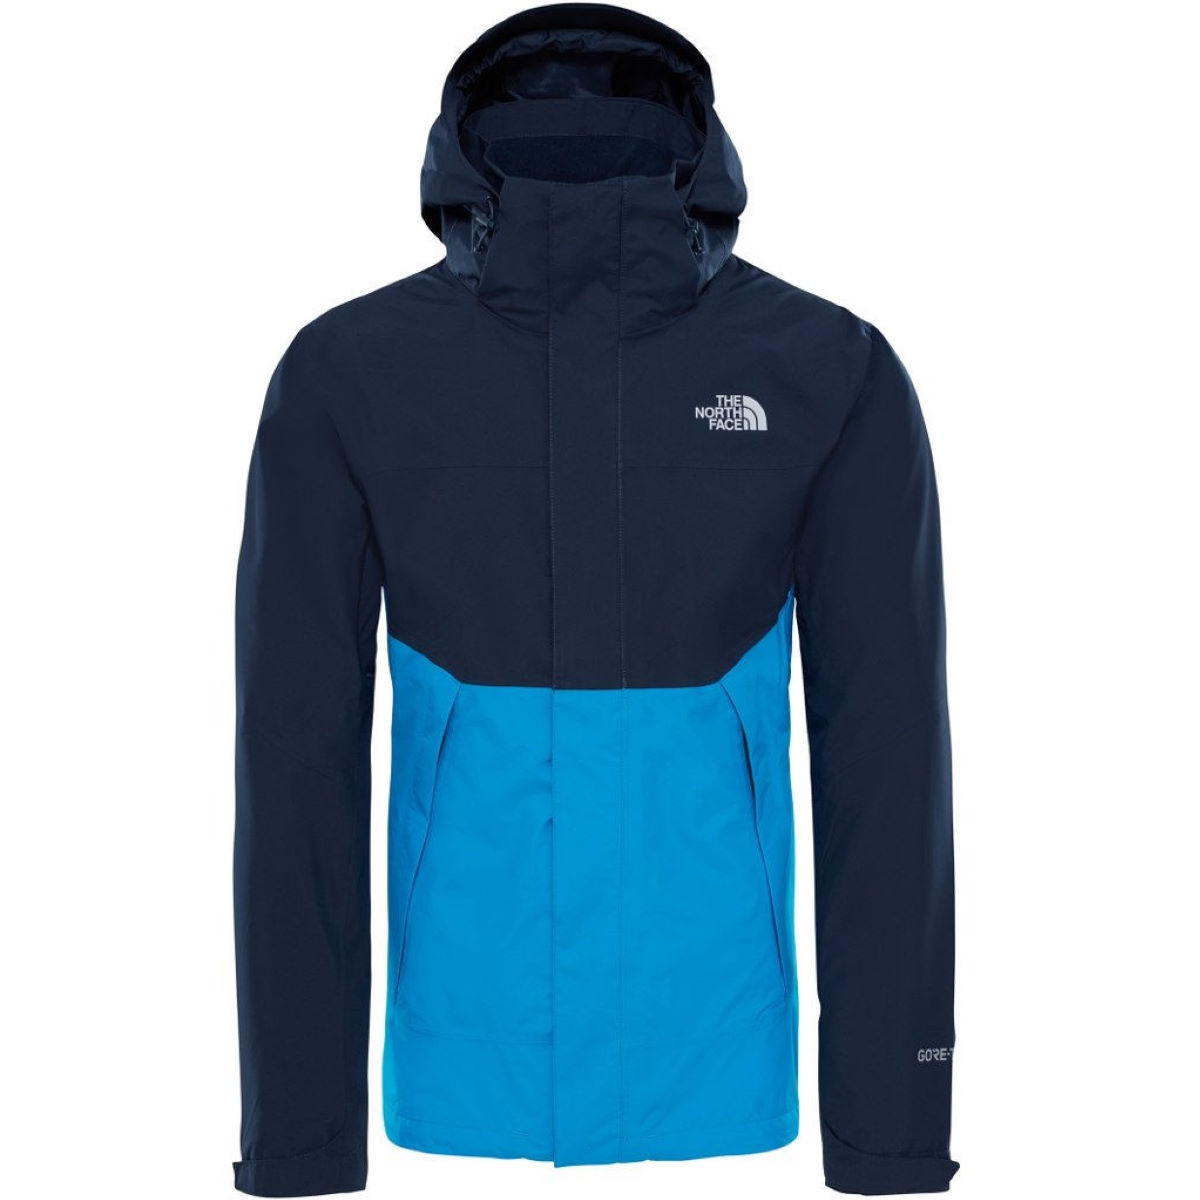 The North Face The North Face Mountain Light II Shell Jacket   Jackets